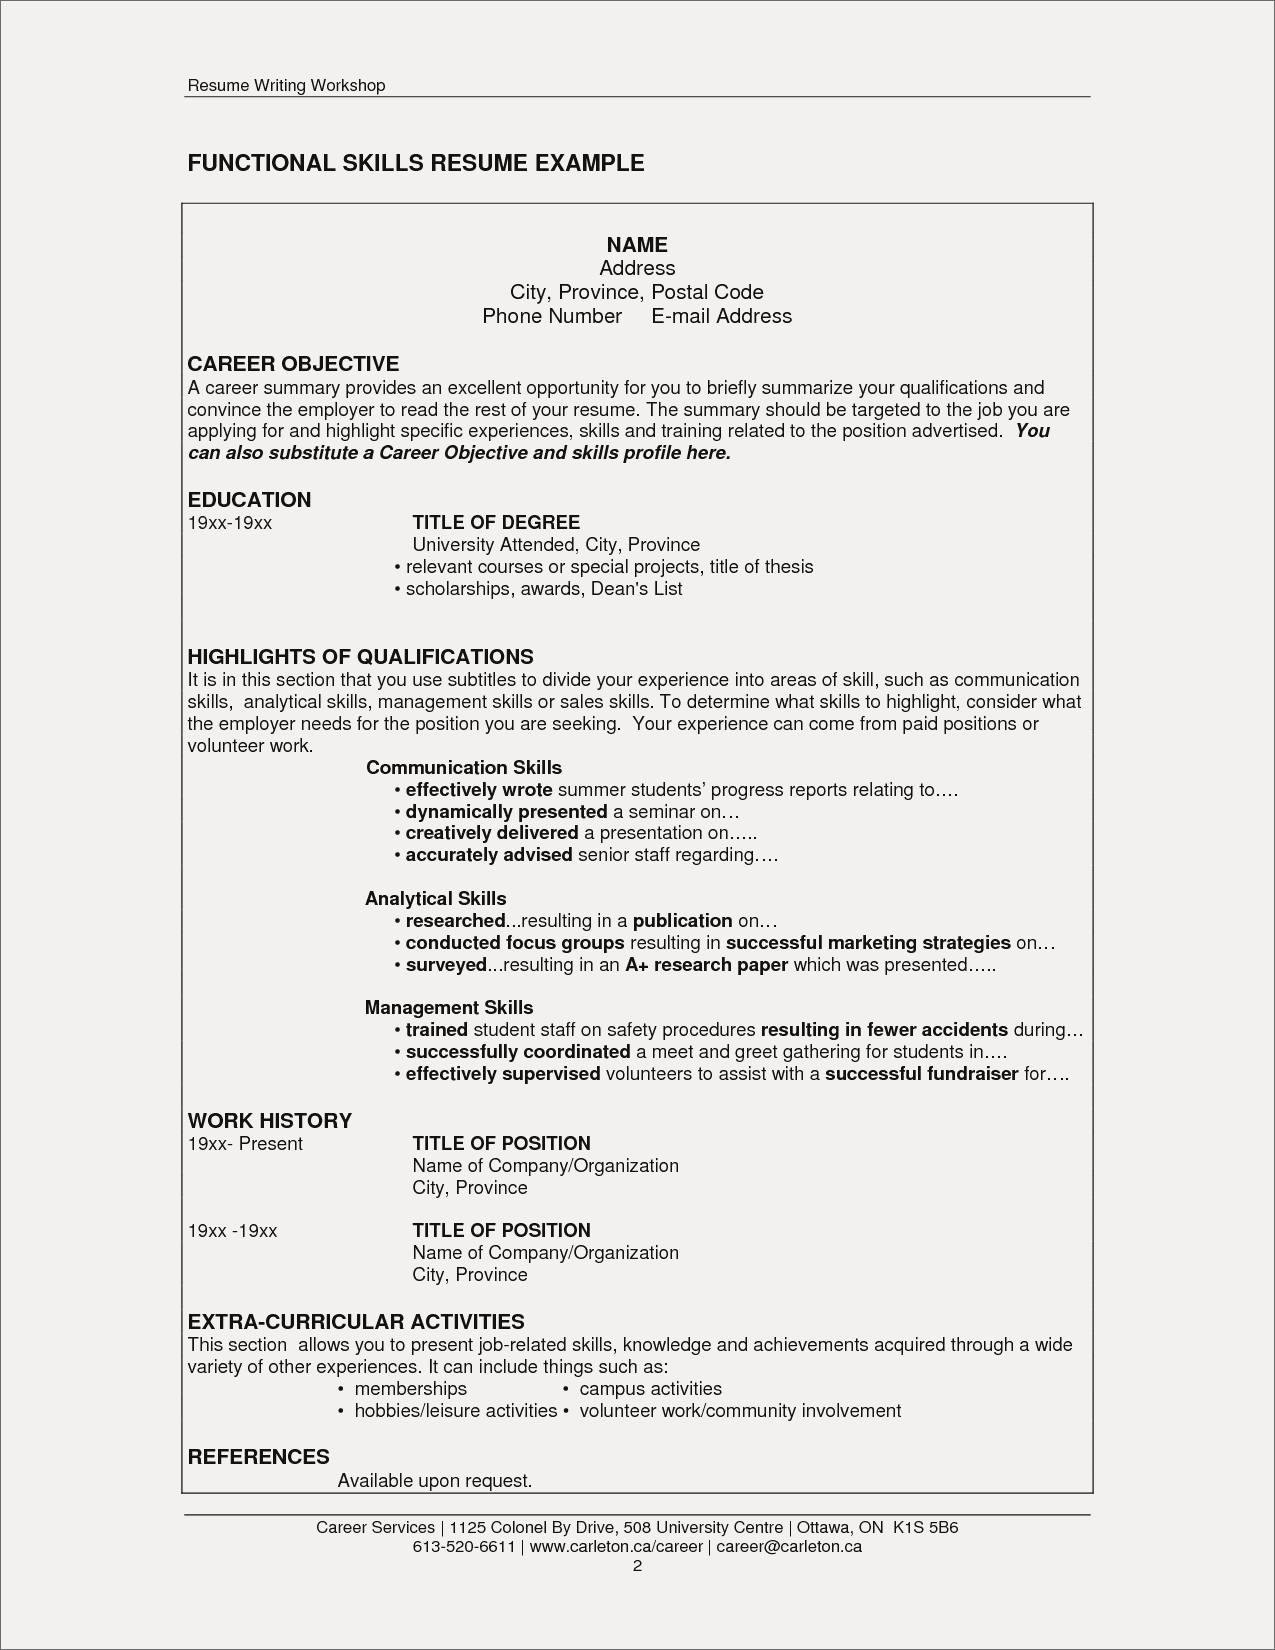 Restaurant Resume Template - Sample Resume for Manager Position Fresh Elegant Grapher Resume